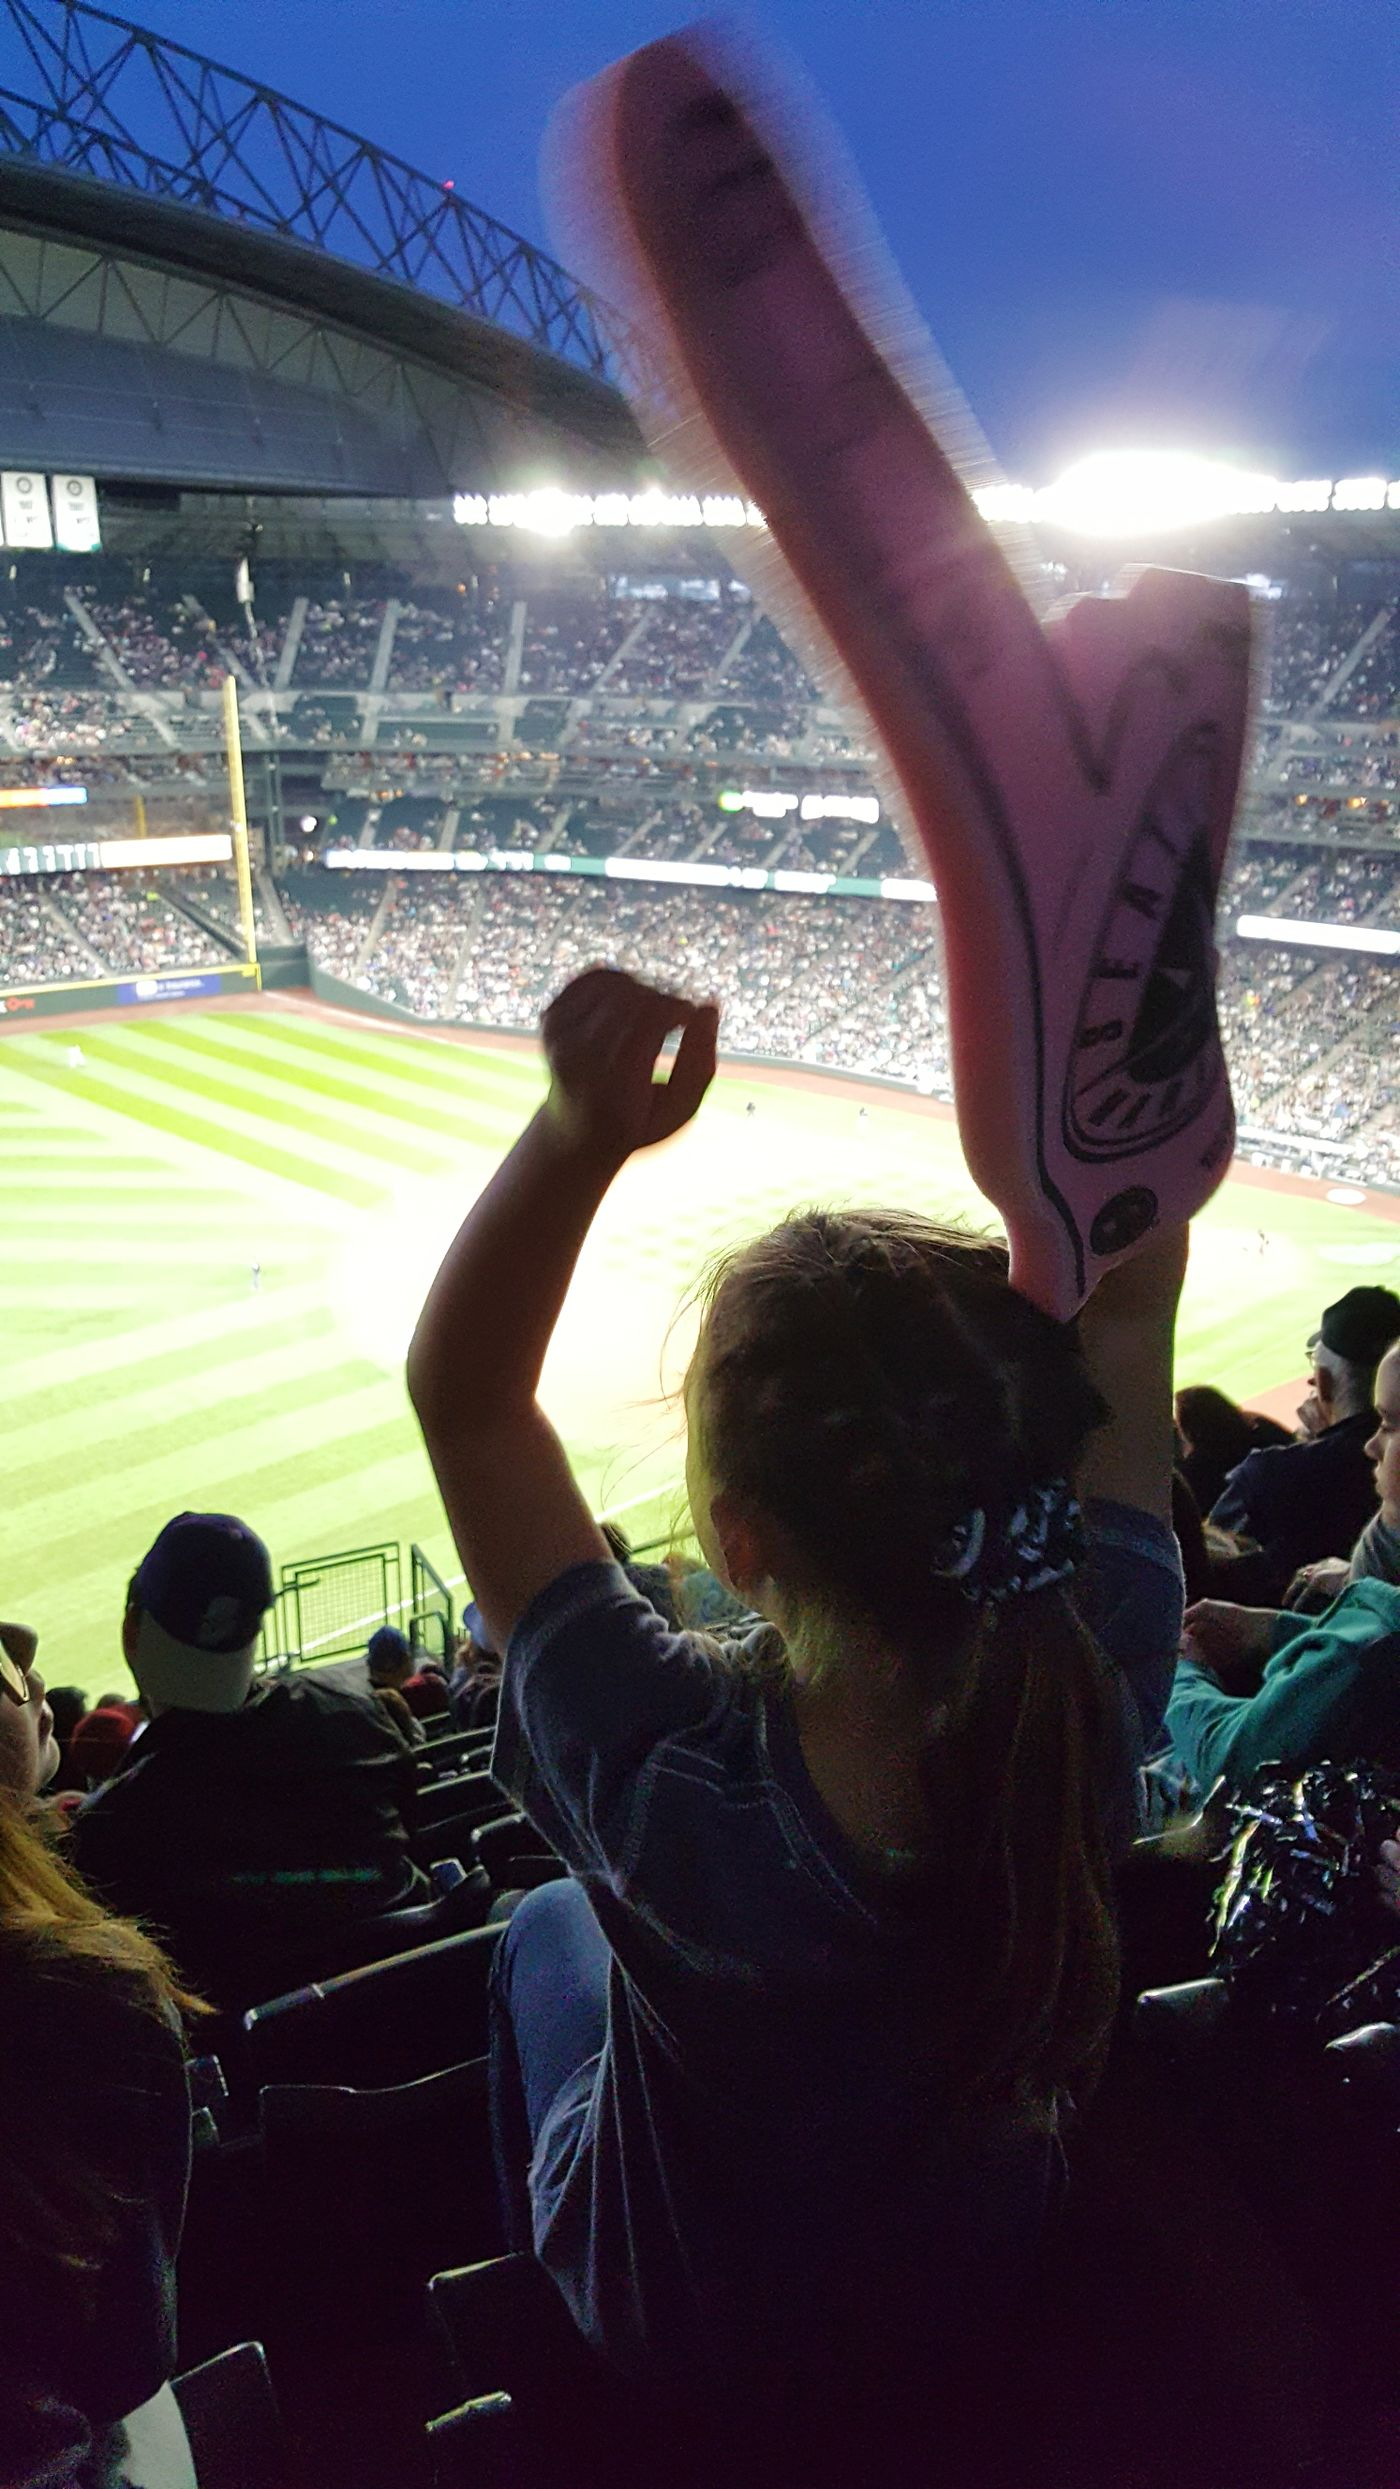 Fan - Enthusiast Arms Raised Baseball Stadium Fun Excitement Human Body Part Crowd Safeco Field Spectator Event Sport Cheering Rooting For My Team  Large Group Of People Night Match - Sport Celebration Audience